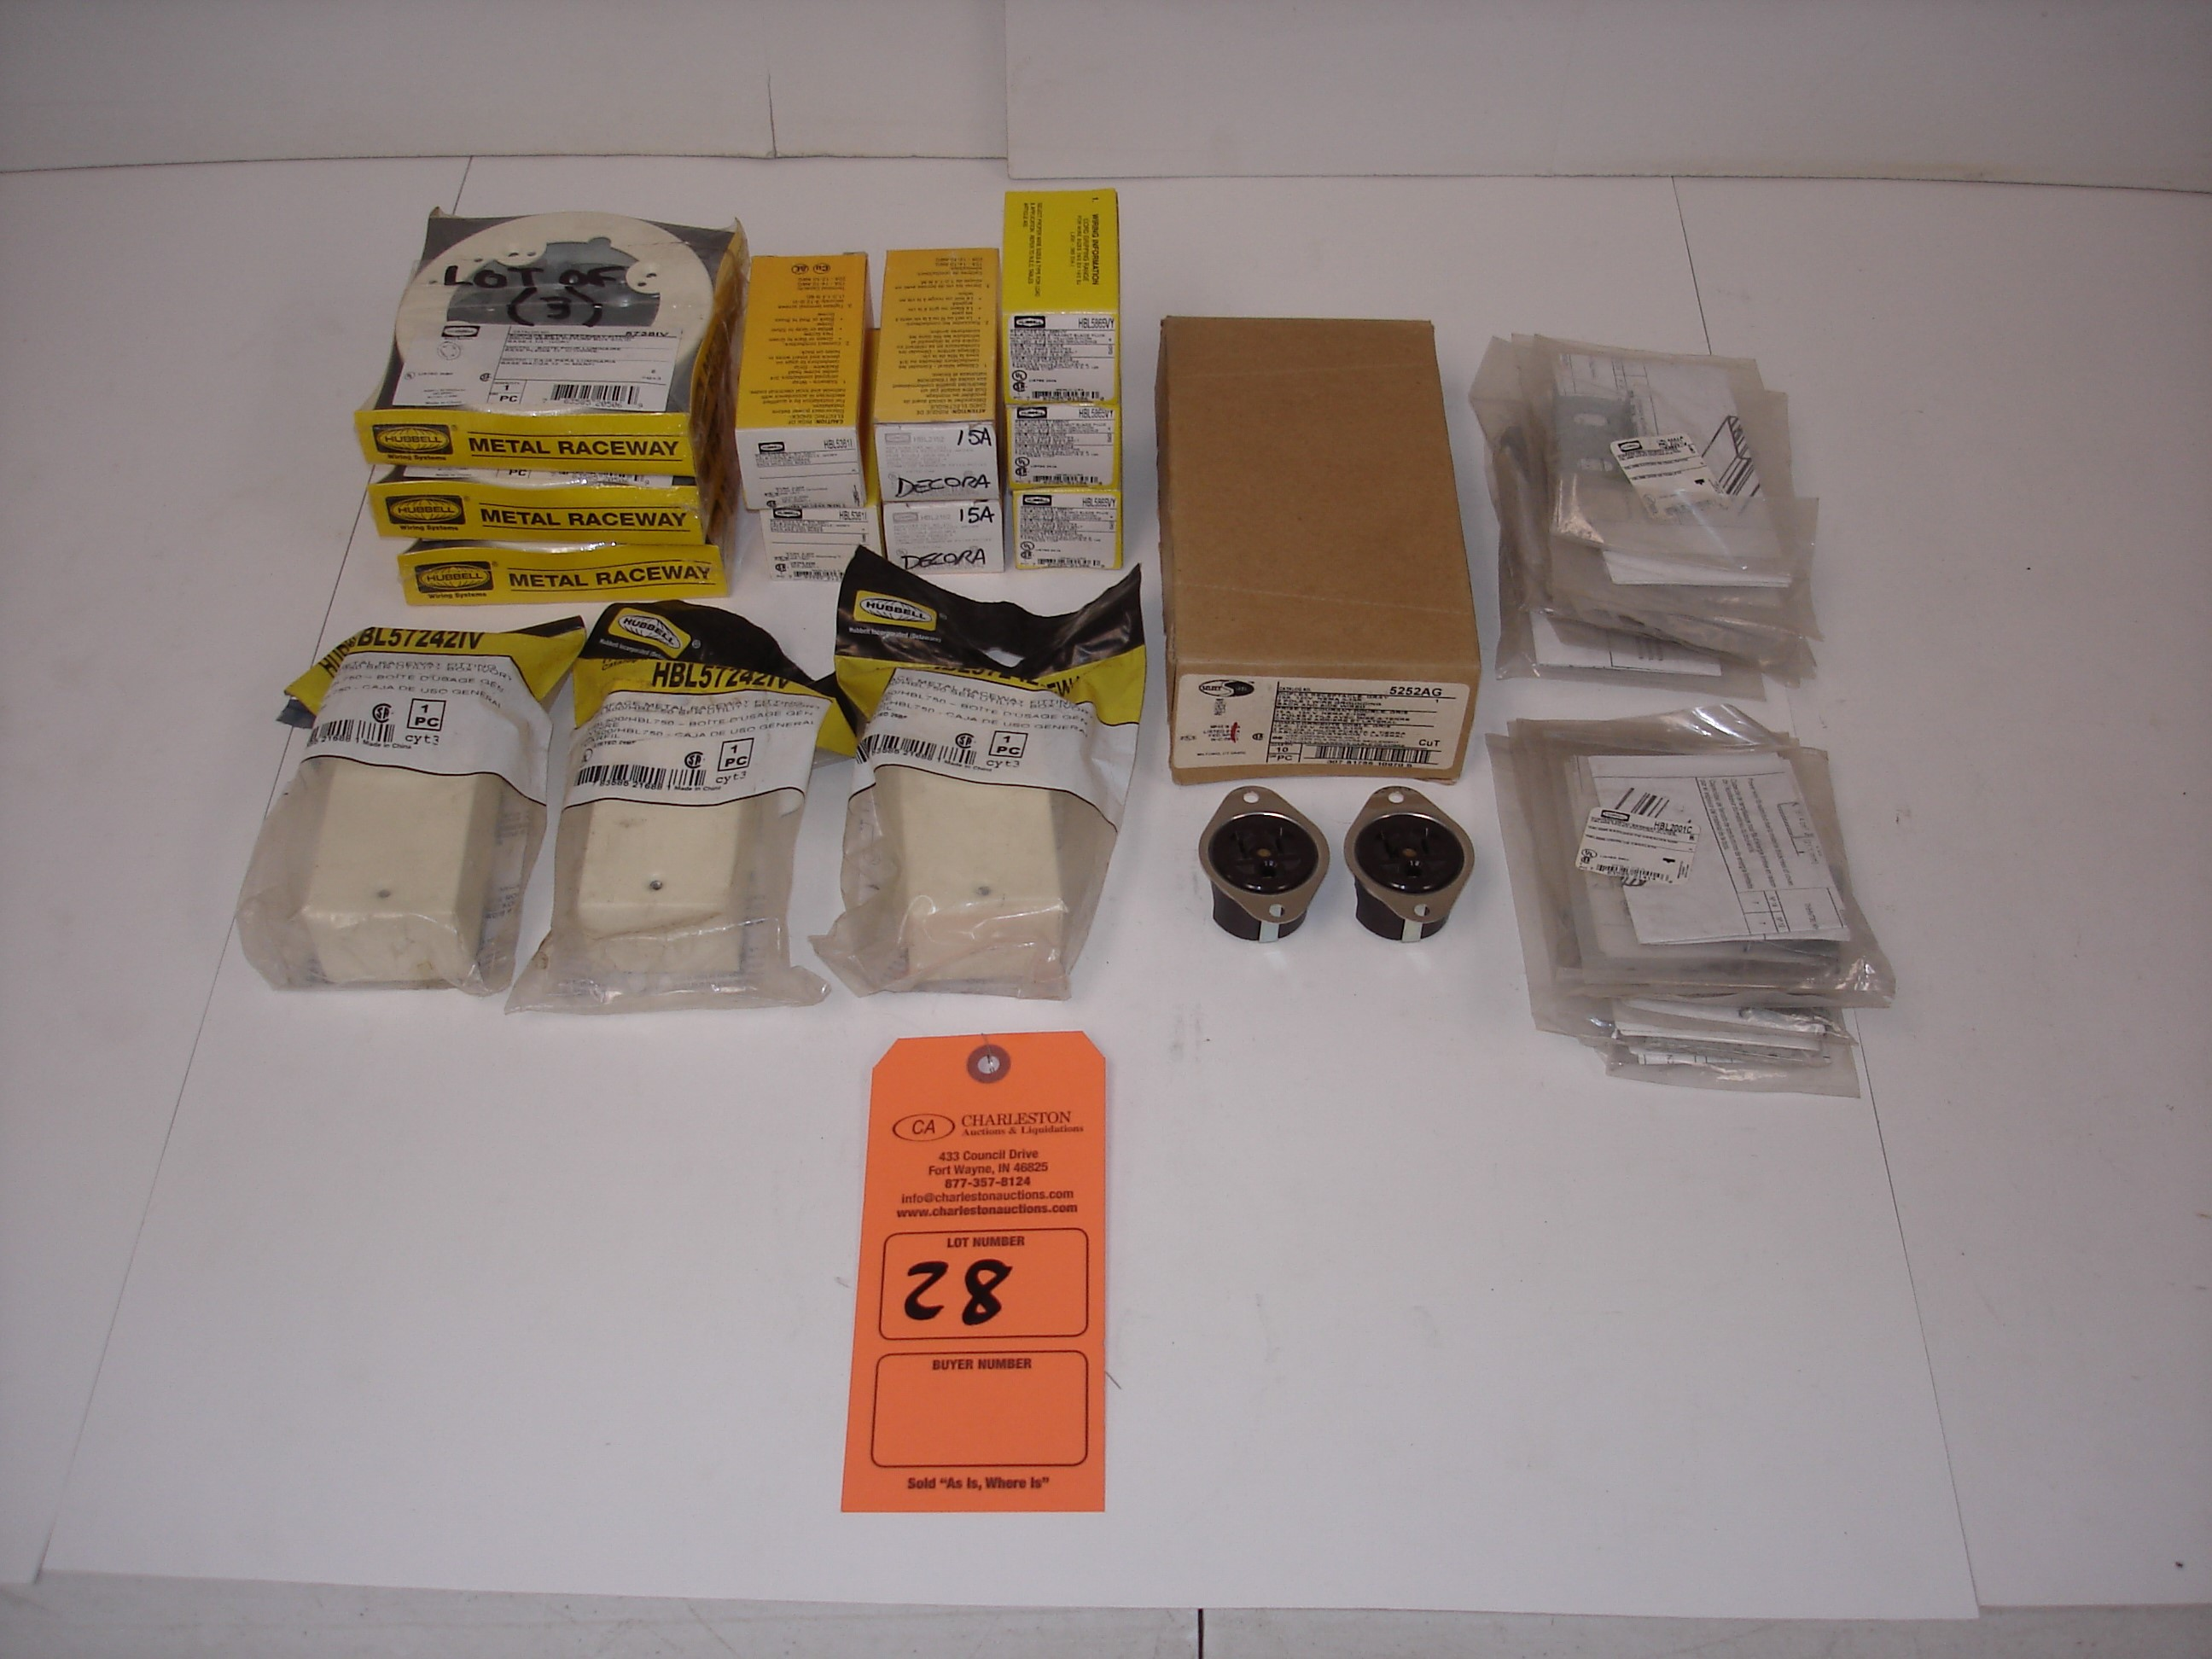 Lot 28 - (25+) MISC HUBBELL ELECTRICAL HARDWARE: HUBBELL HBL5361 AND ALL OTHER ITEMS INCLUDED IN PHOTOS!